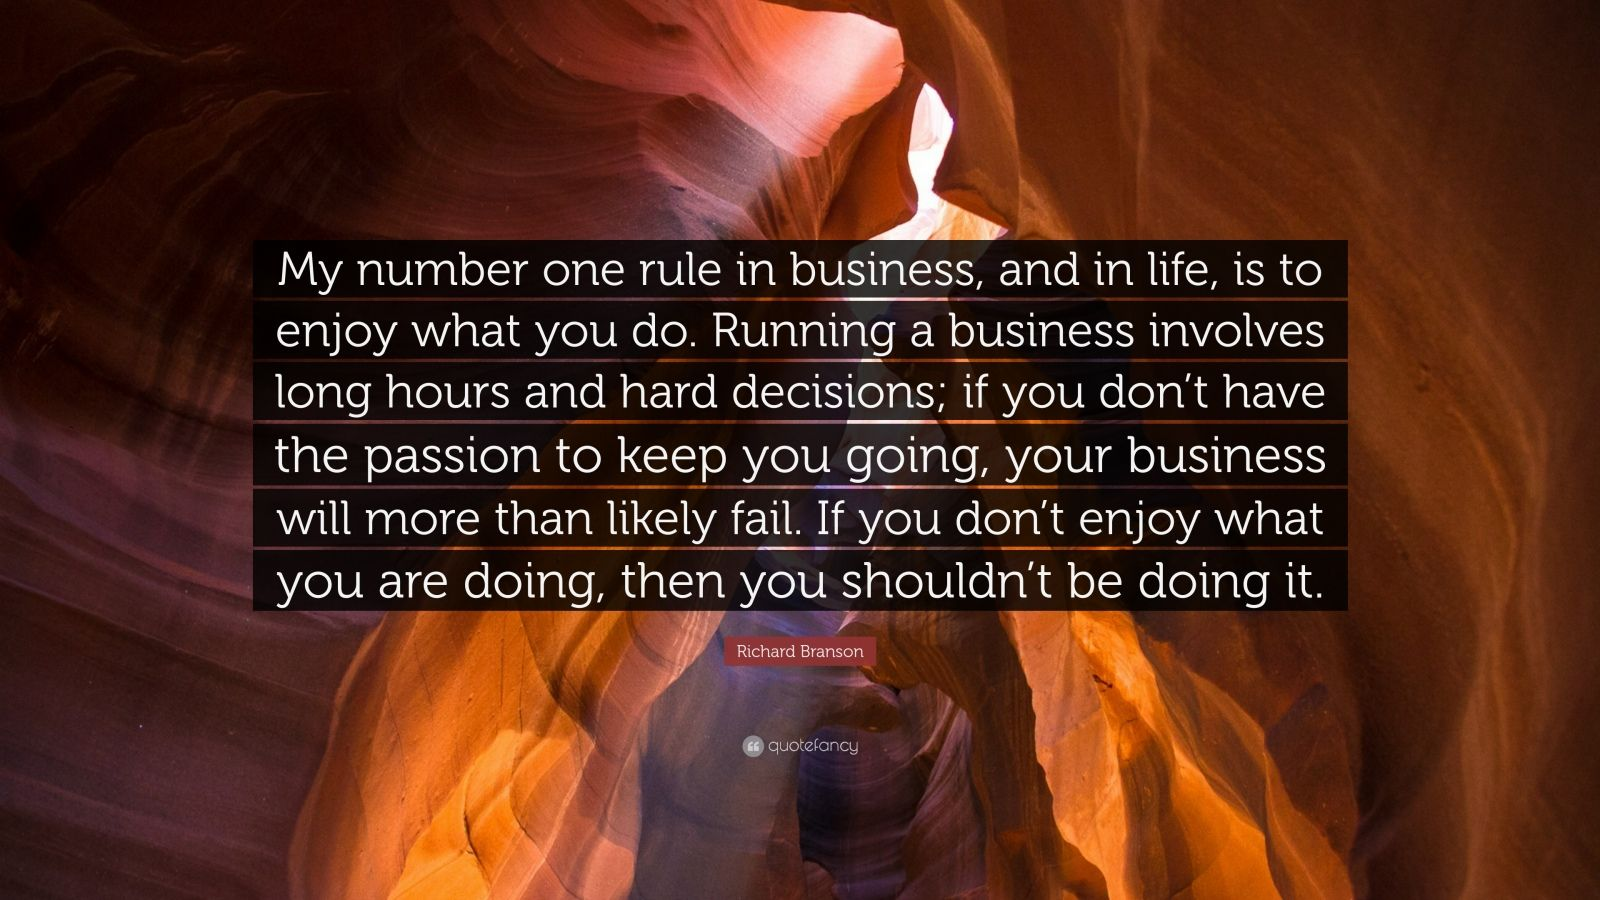 "Richard Branson Quote: ""My number one rule in business, and in life, is to enjoy what you do. Running a business involves long hours and hard decisions; if you don't have the passion to keep you going, your business will more than likely fail. If you don't enjoy what you are doing, then you shouldn't be doing it."""